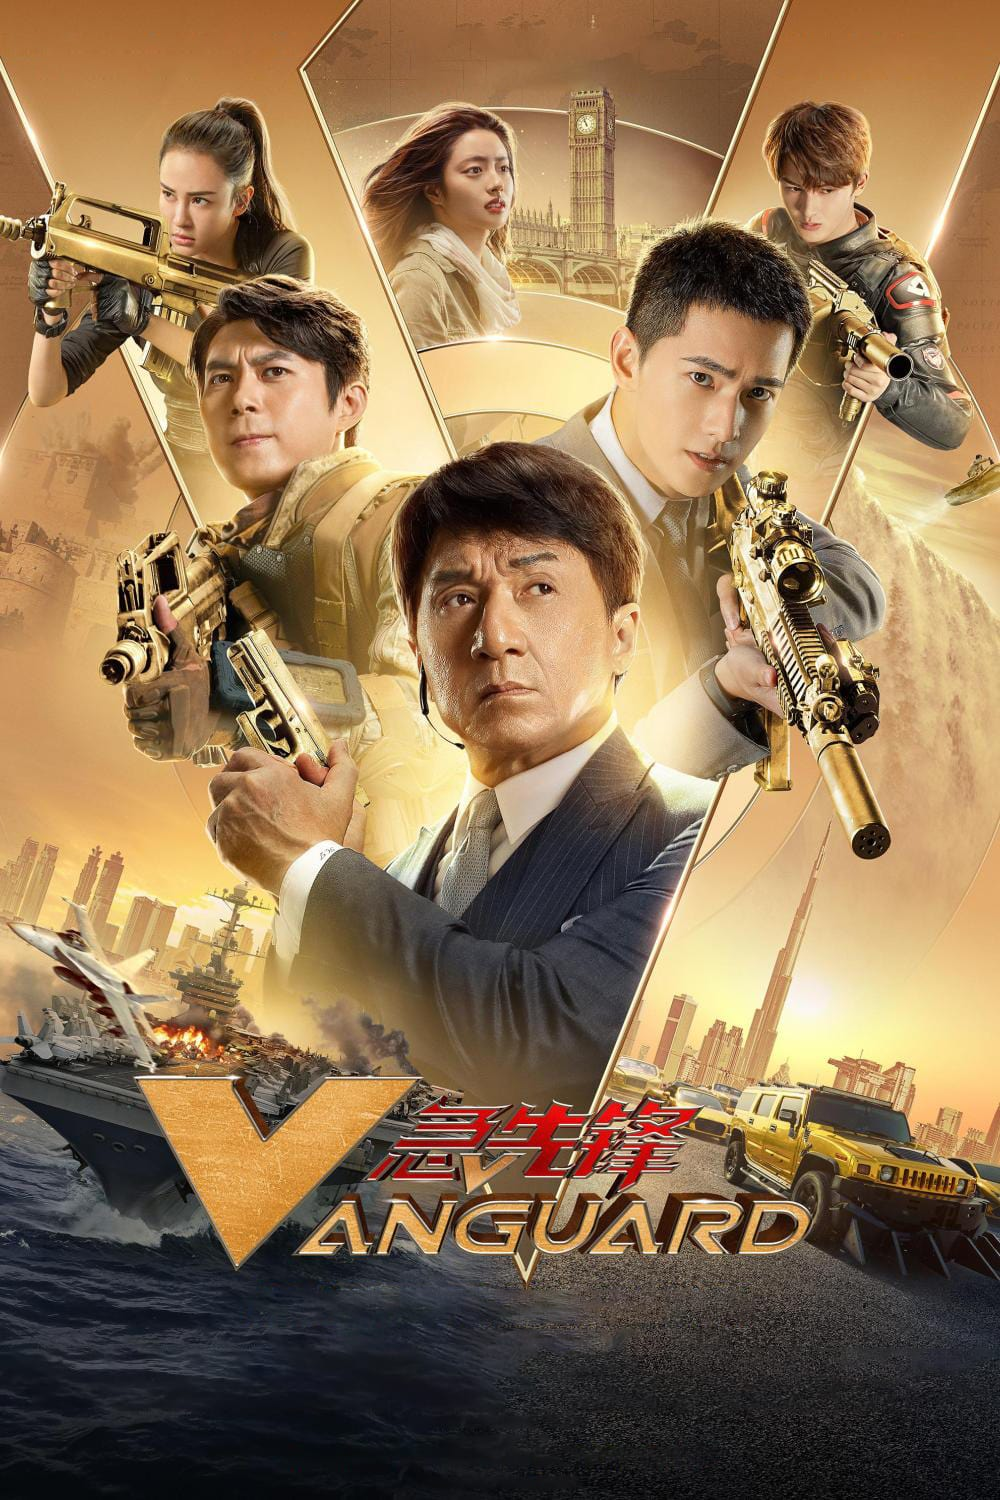 Vanguard (2020) Subtitle Indonesia